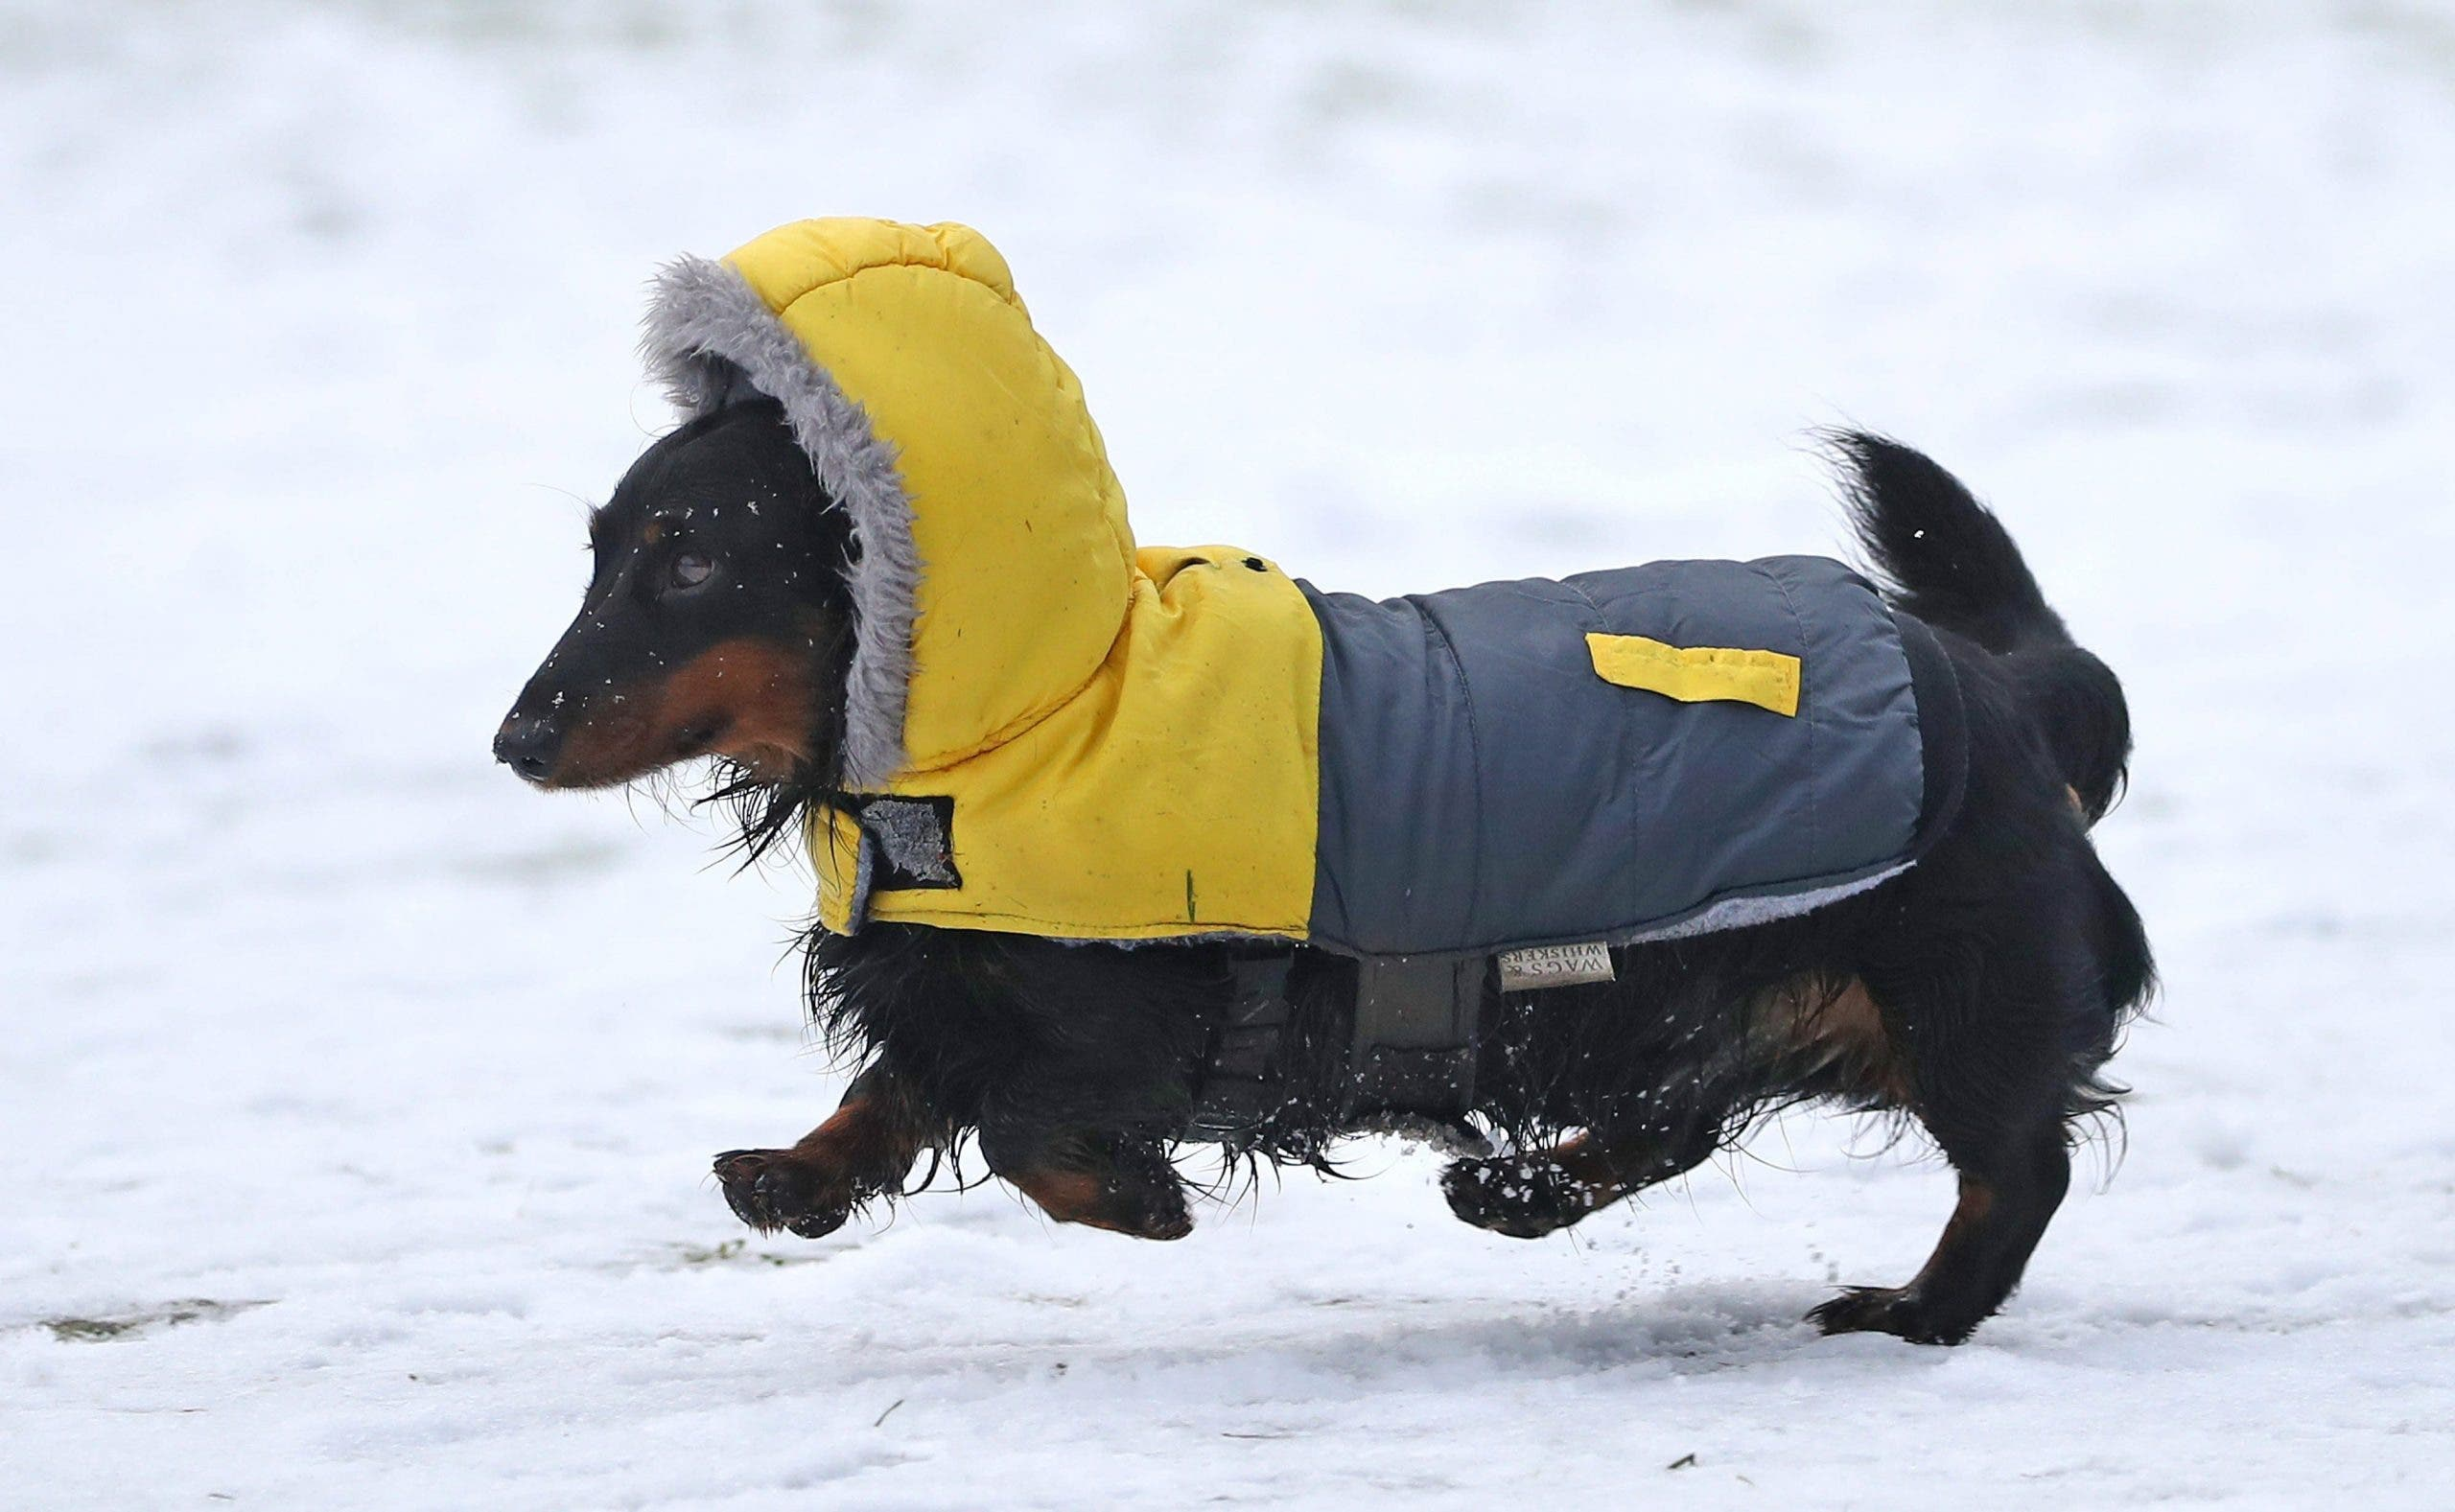 Dogs have a higher tolerance for the cold... but up to a limit